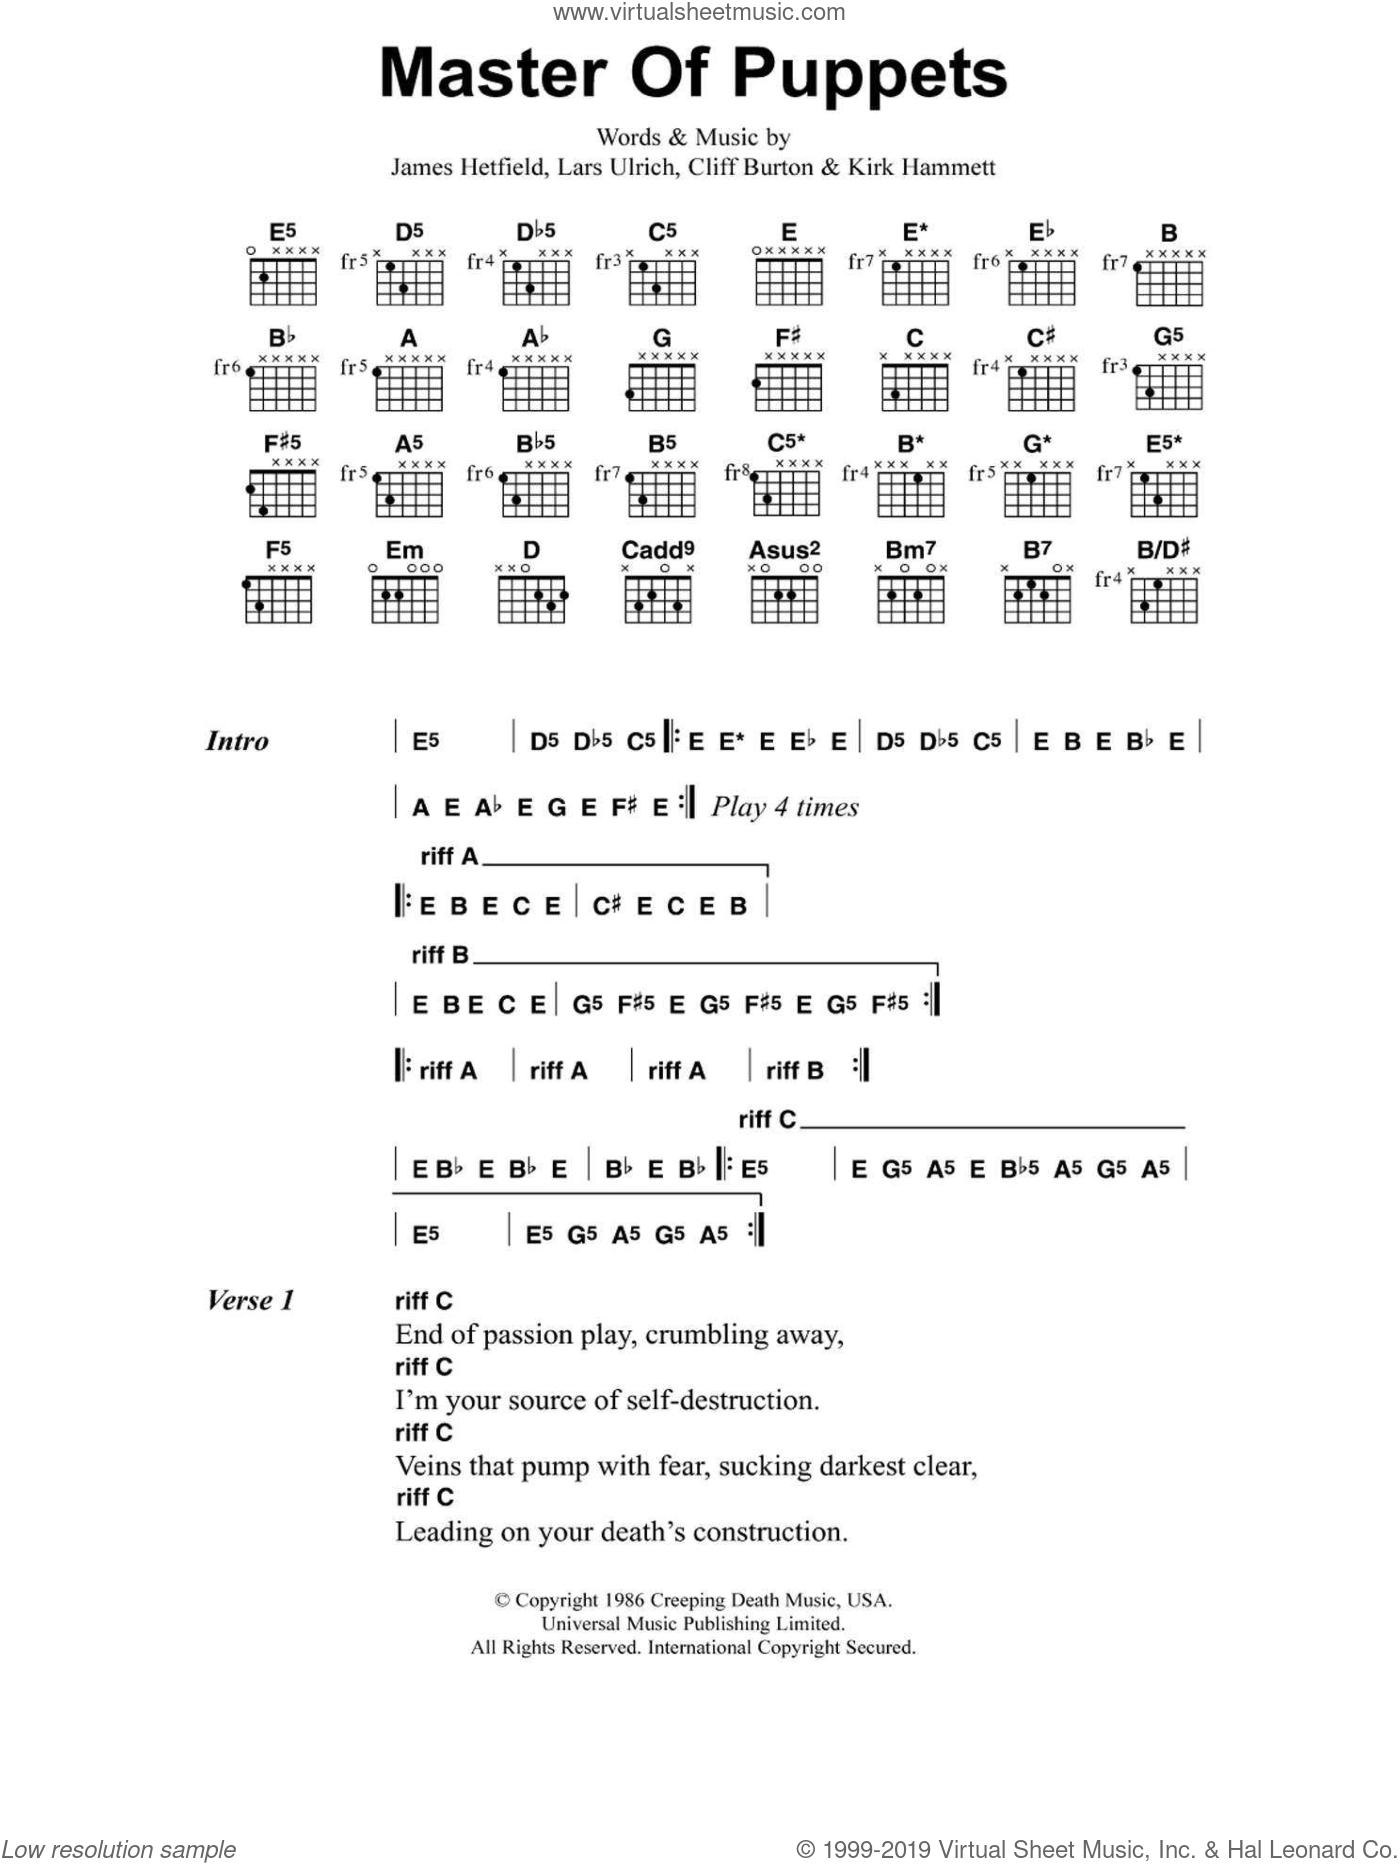 Master Of Puppets sheet music for guitar (chords) by Metallica, Cliff Burton, James Hetfield, Kirk Hammett and Lars Ulrich, intermediate skill level